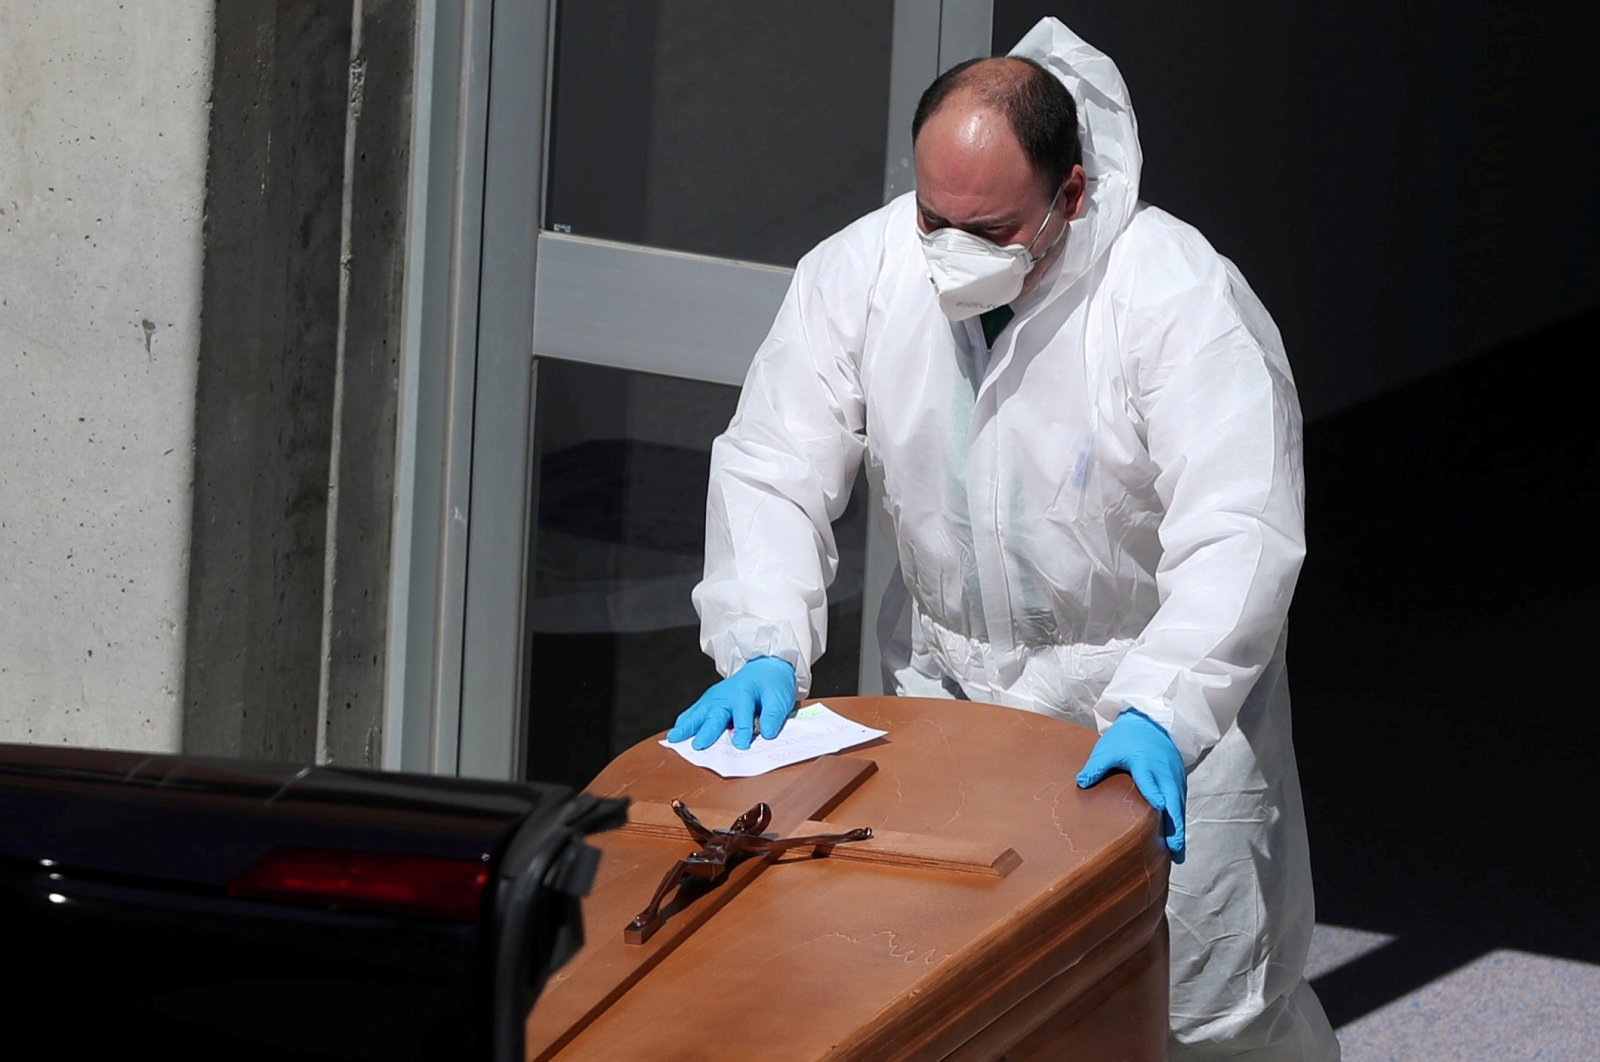 A funeral worker wearing a protective suit carries a coffin out of the morgue at Severo Ochoa Hospital, during the COVID-19 outbreak in Leganes, Spain, Thursday, March 26, 2020. (Reuters Photo)